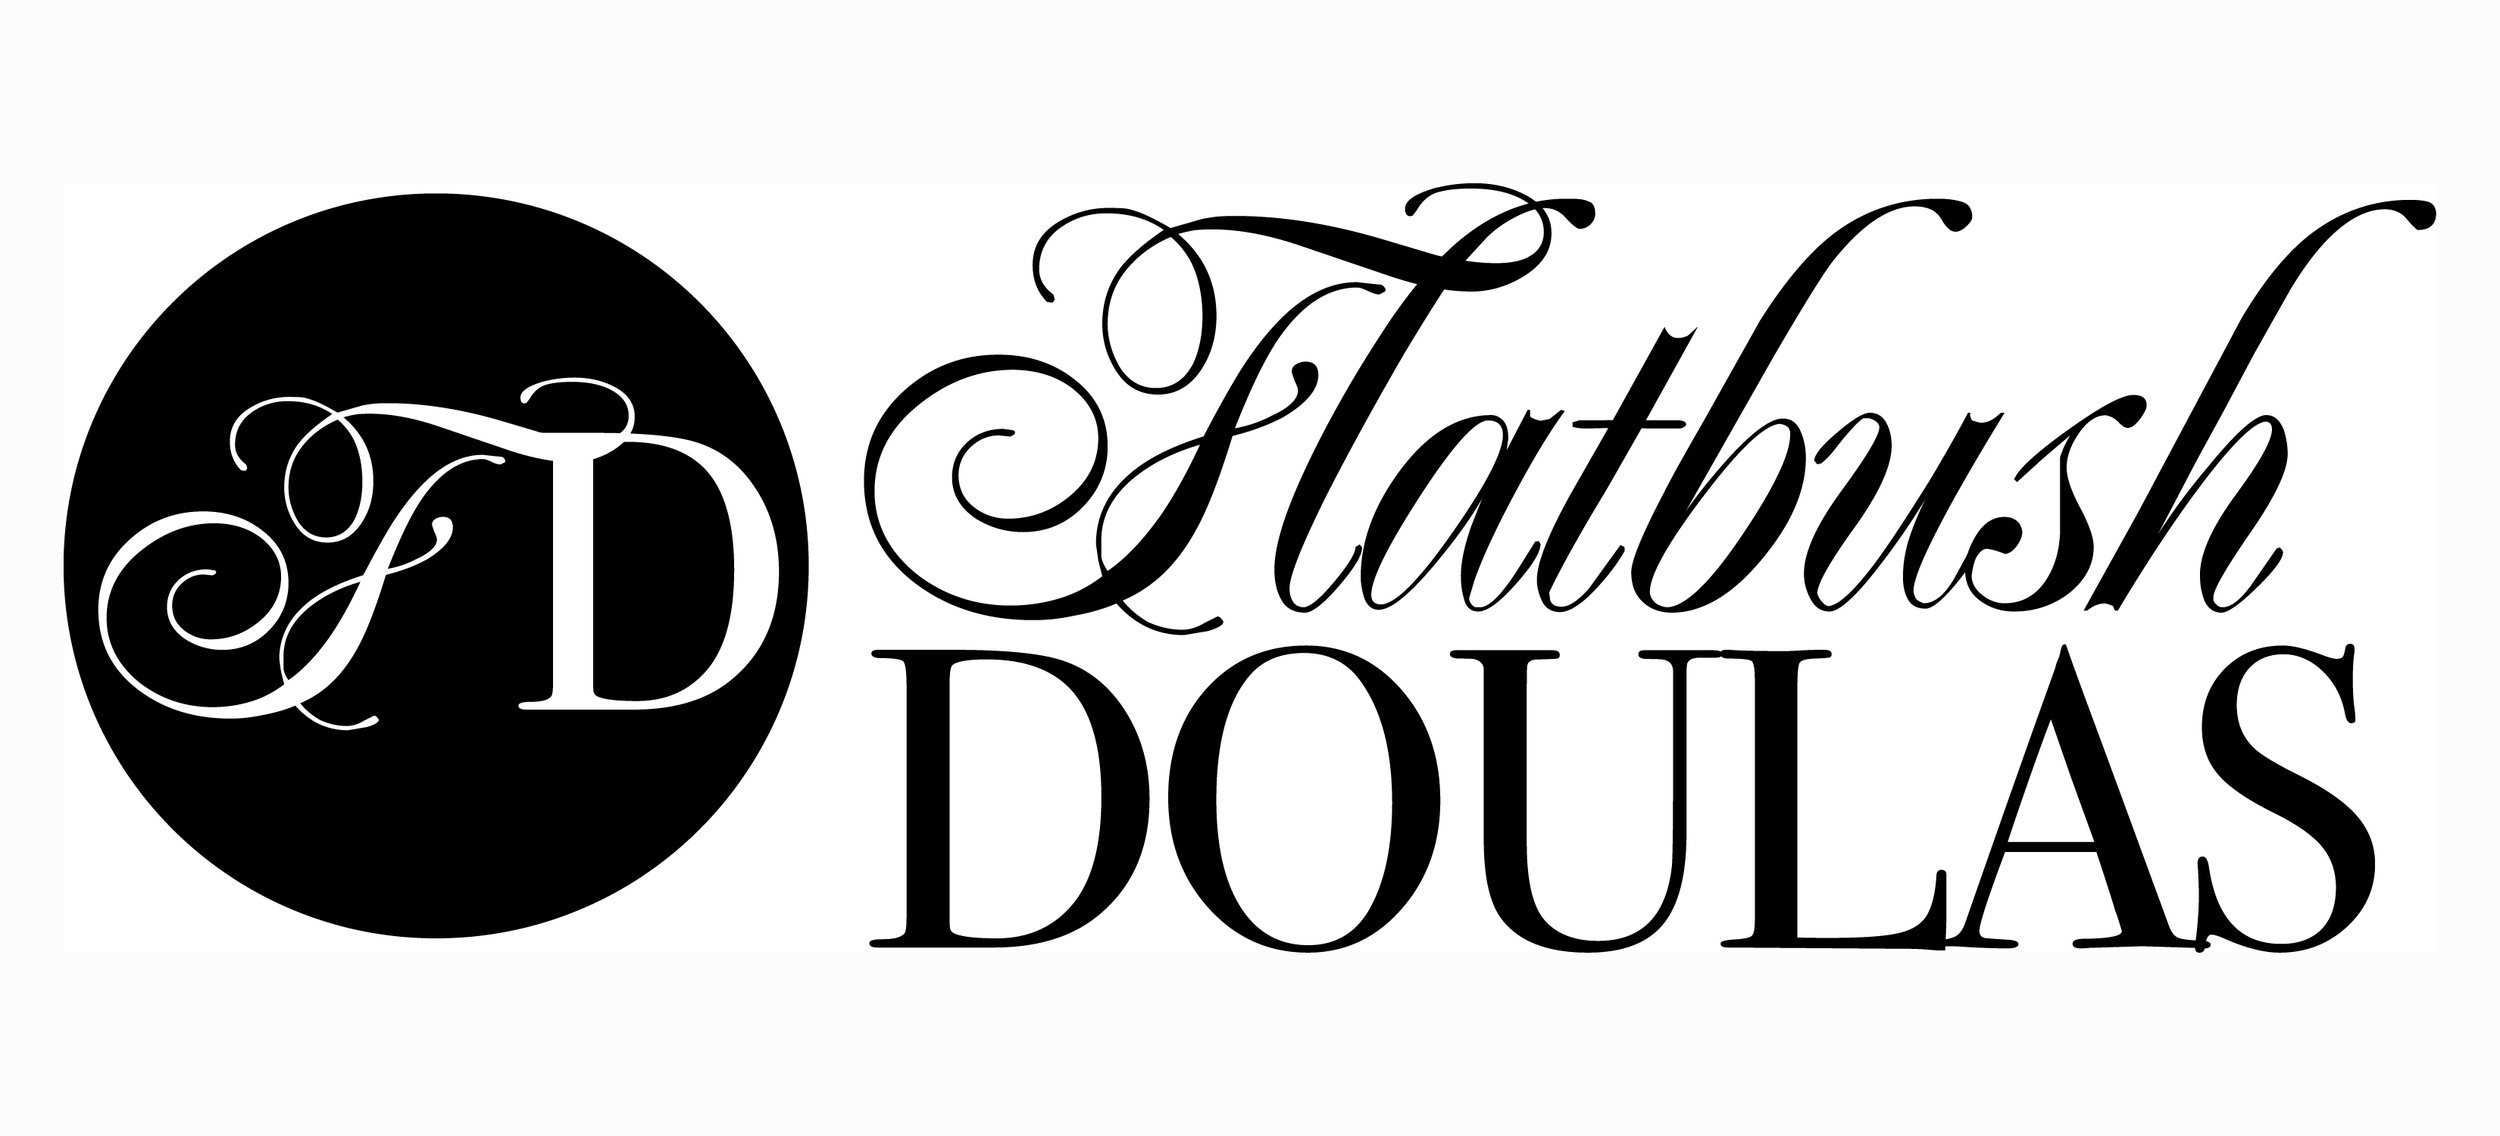 Flatbush-Doulas (Outlines)-Final.jpg